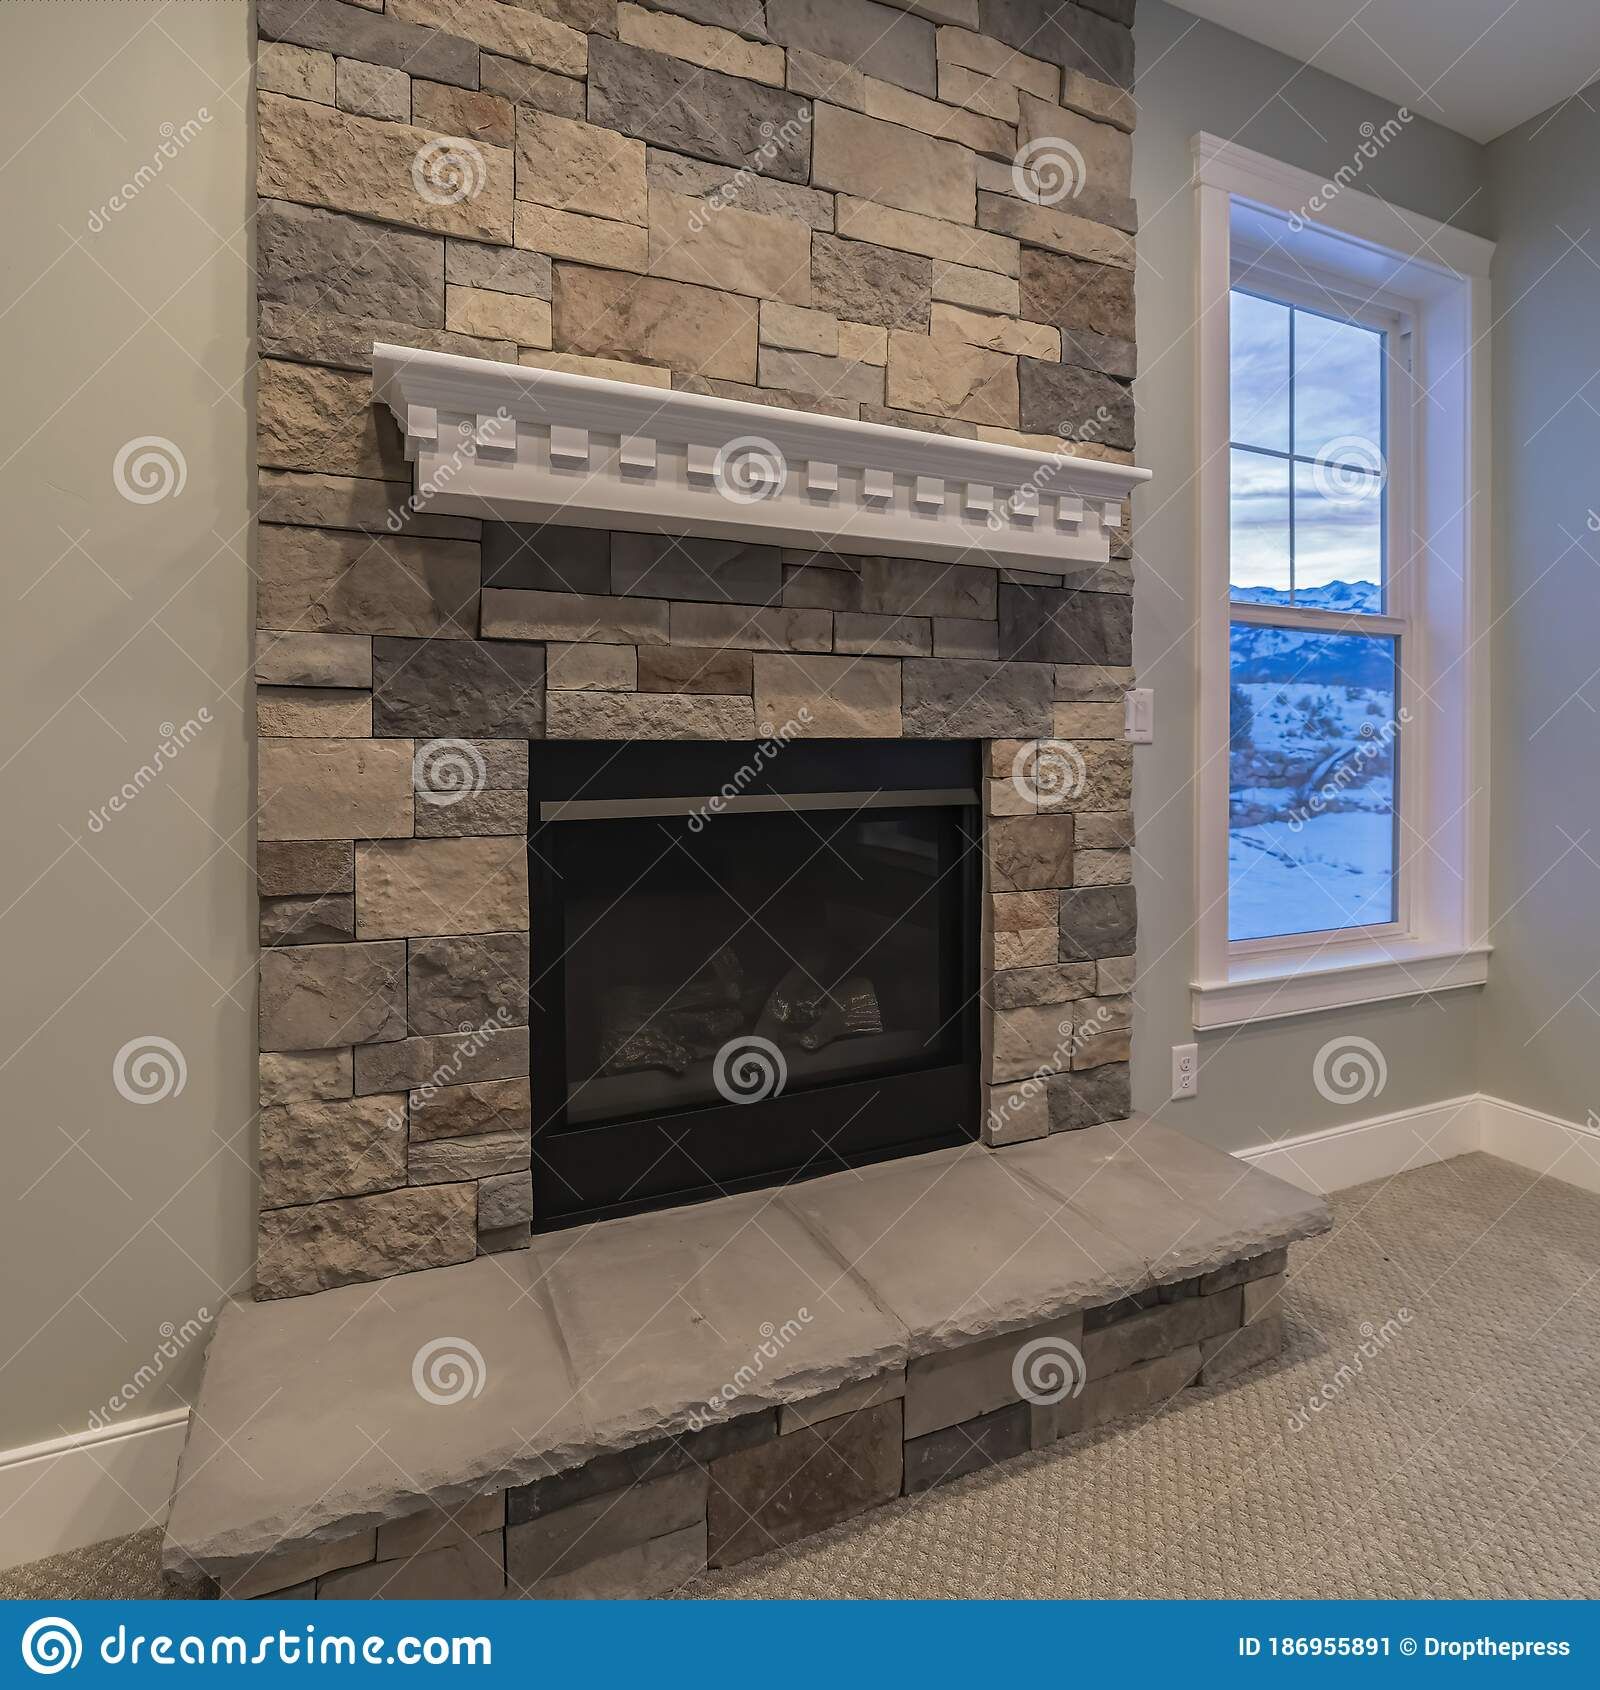 Picture of: Square Modern Fireplace And Decorative Shelf Against Stone Brick Accent Wall Of Home Stock Image Image Of Residence Real 186955891